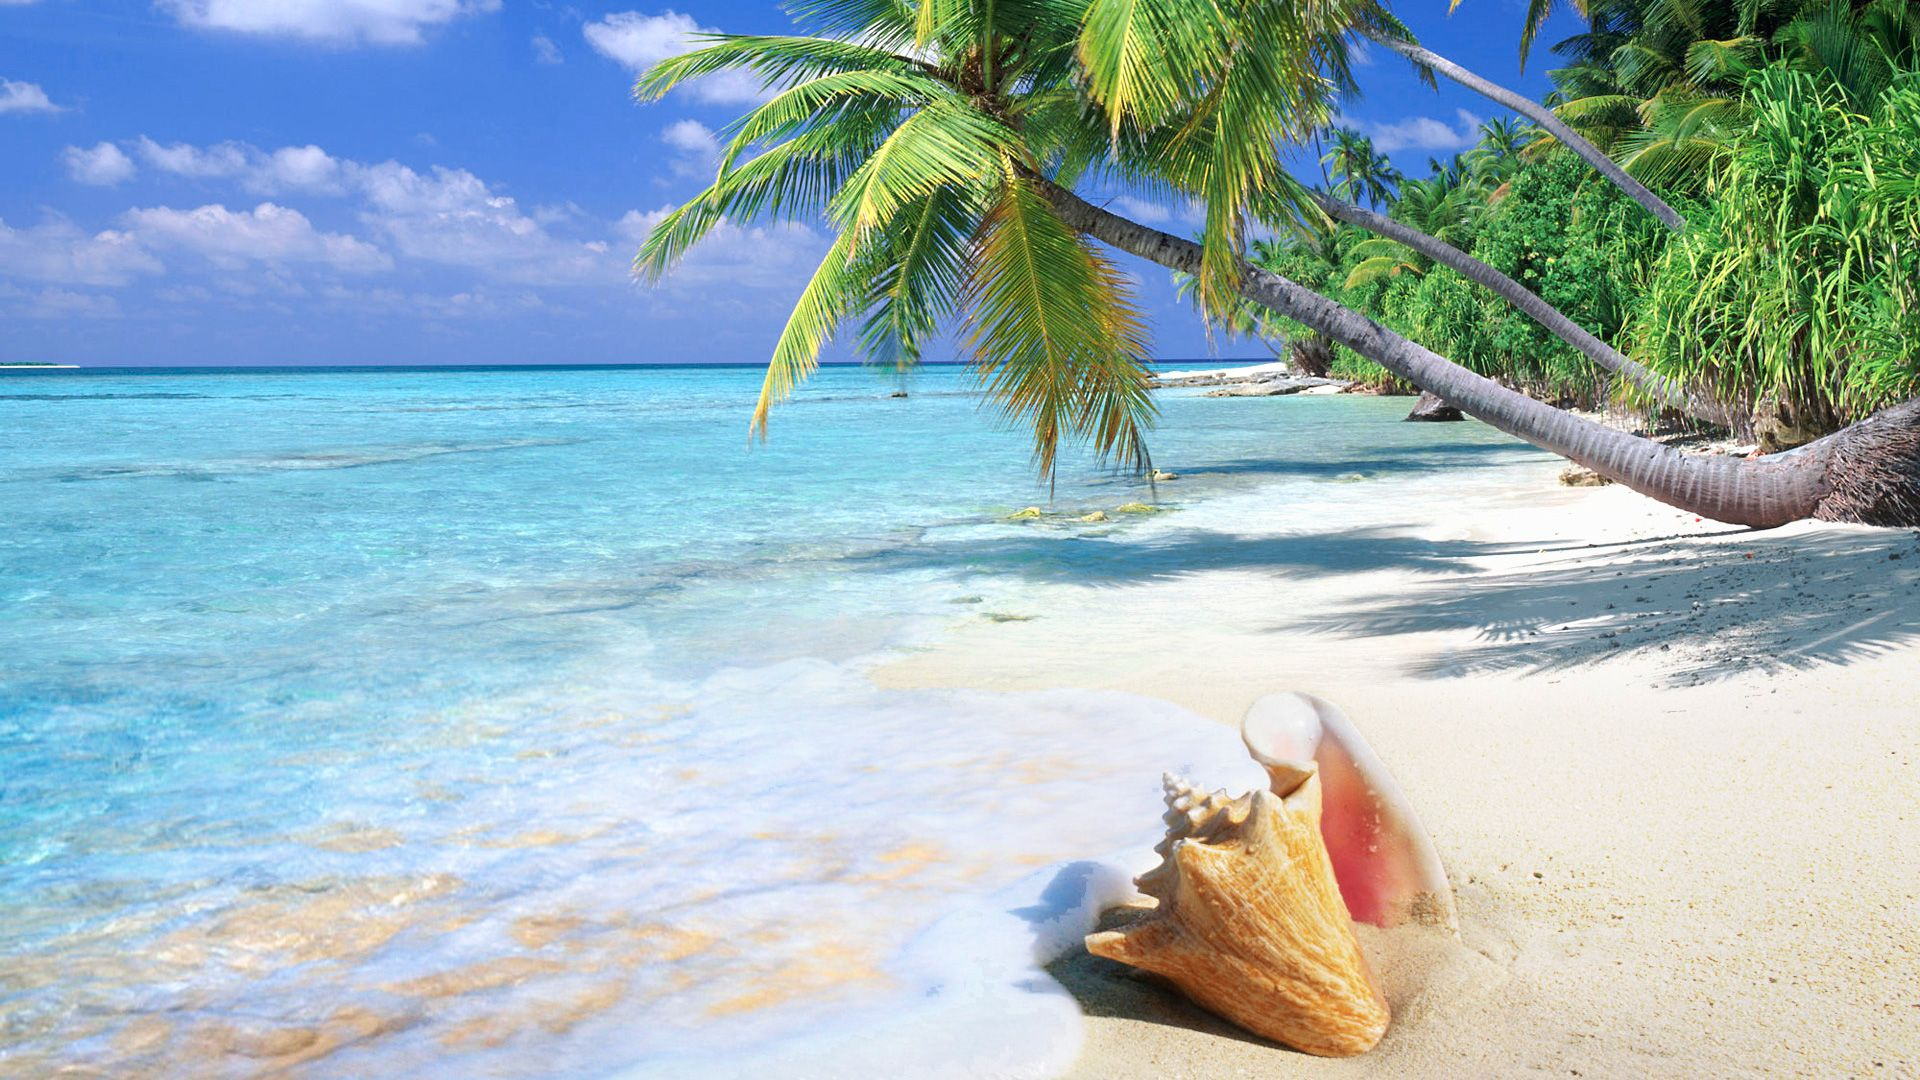 Hd Tropical Island Beach Paradise Wallpapers And Backgrounds: Tropical Beach Shell - 1920x1080 - 16:9